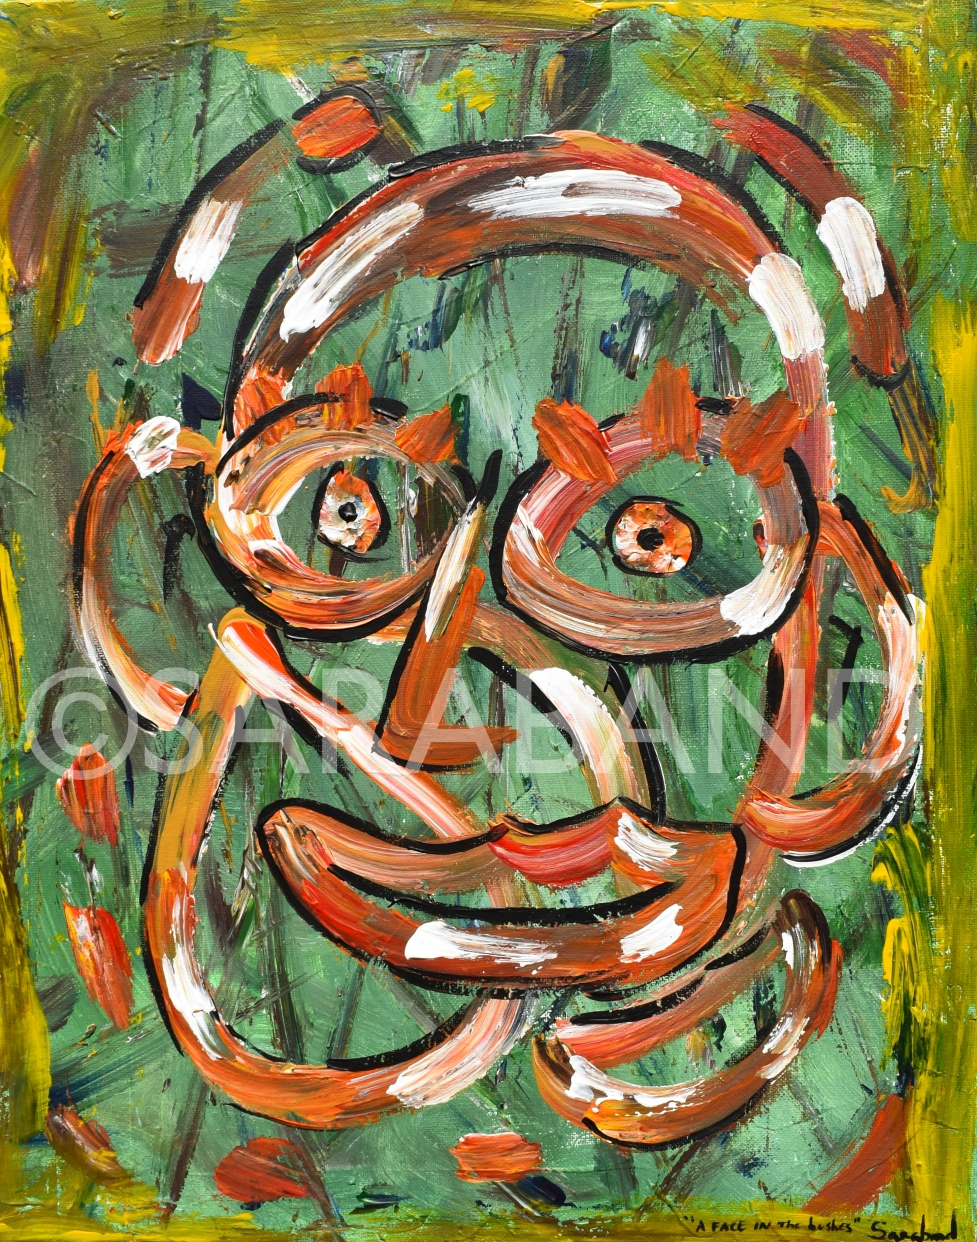 """A FACE IN THE BUSHES"" - 50x40cm, acrylic on canvas - £290"